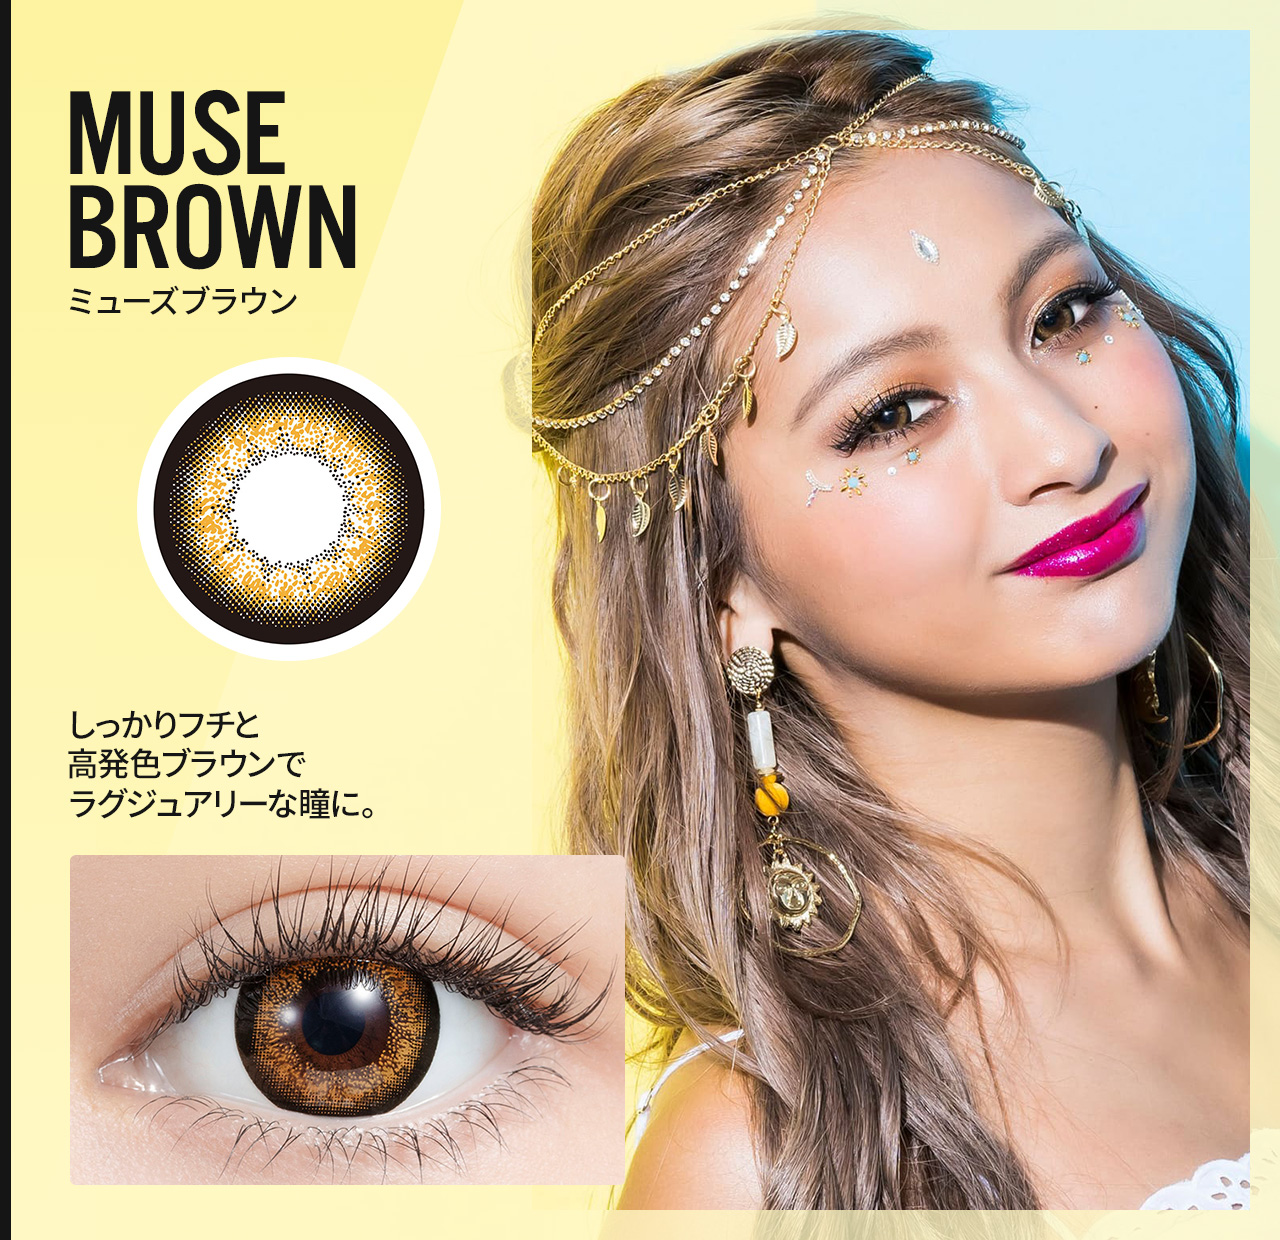 MUSE BROWN ミューズブラウン